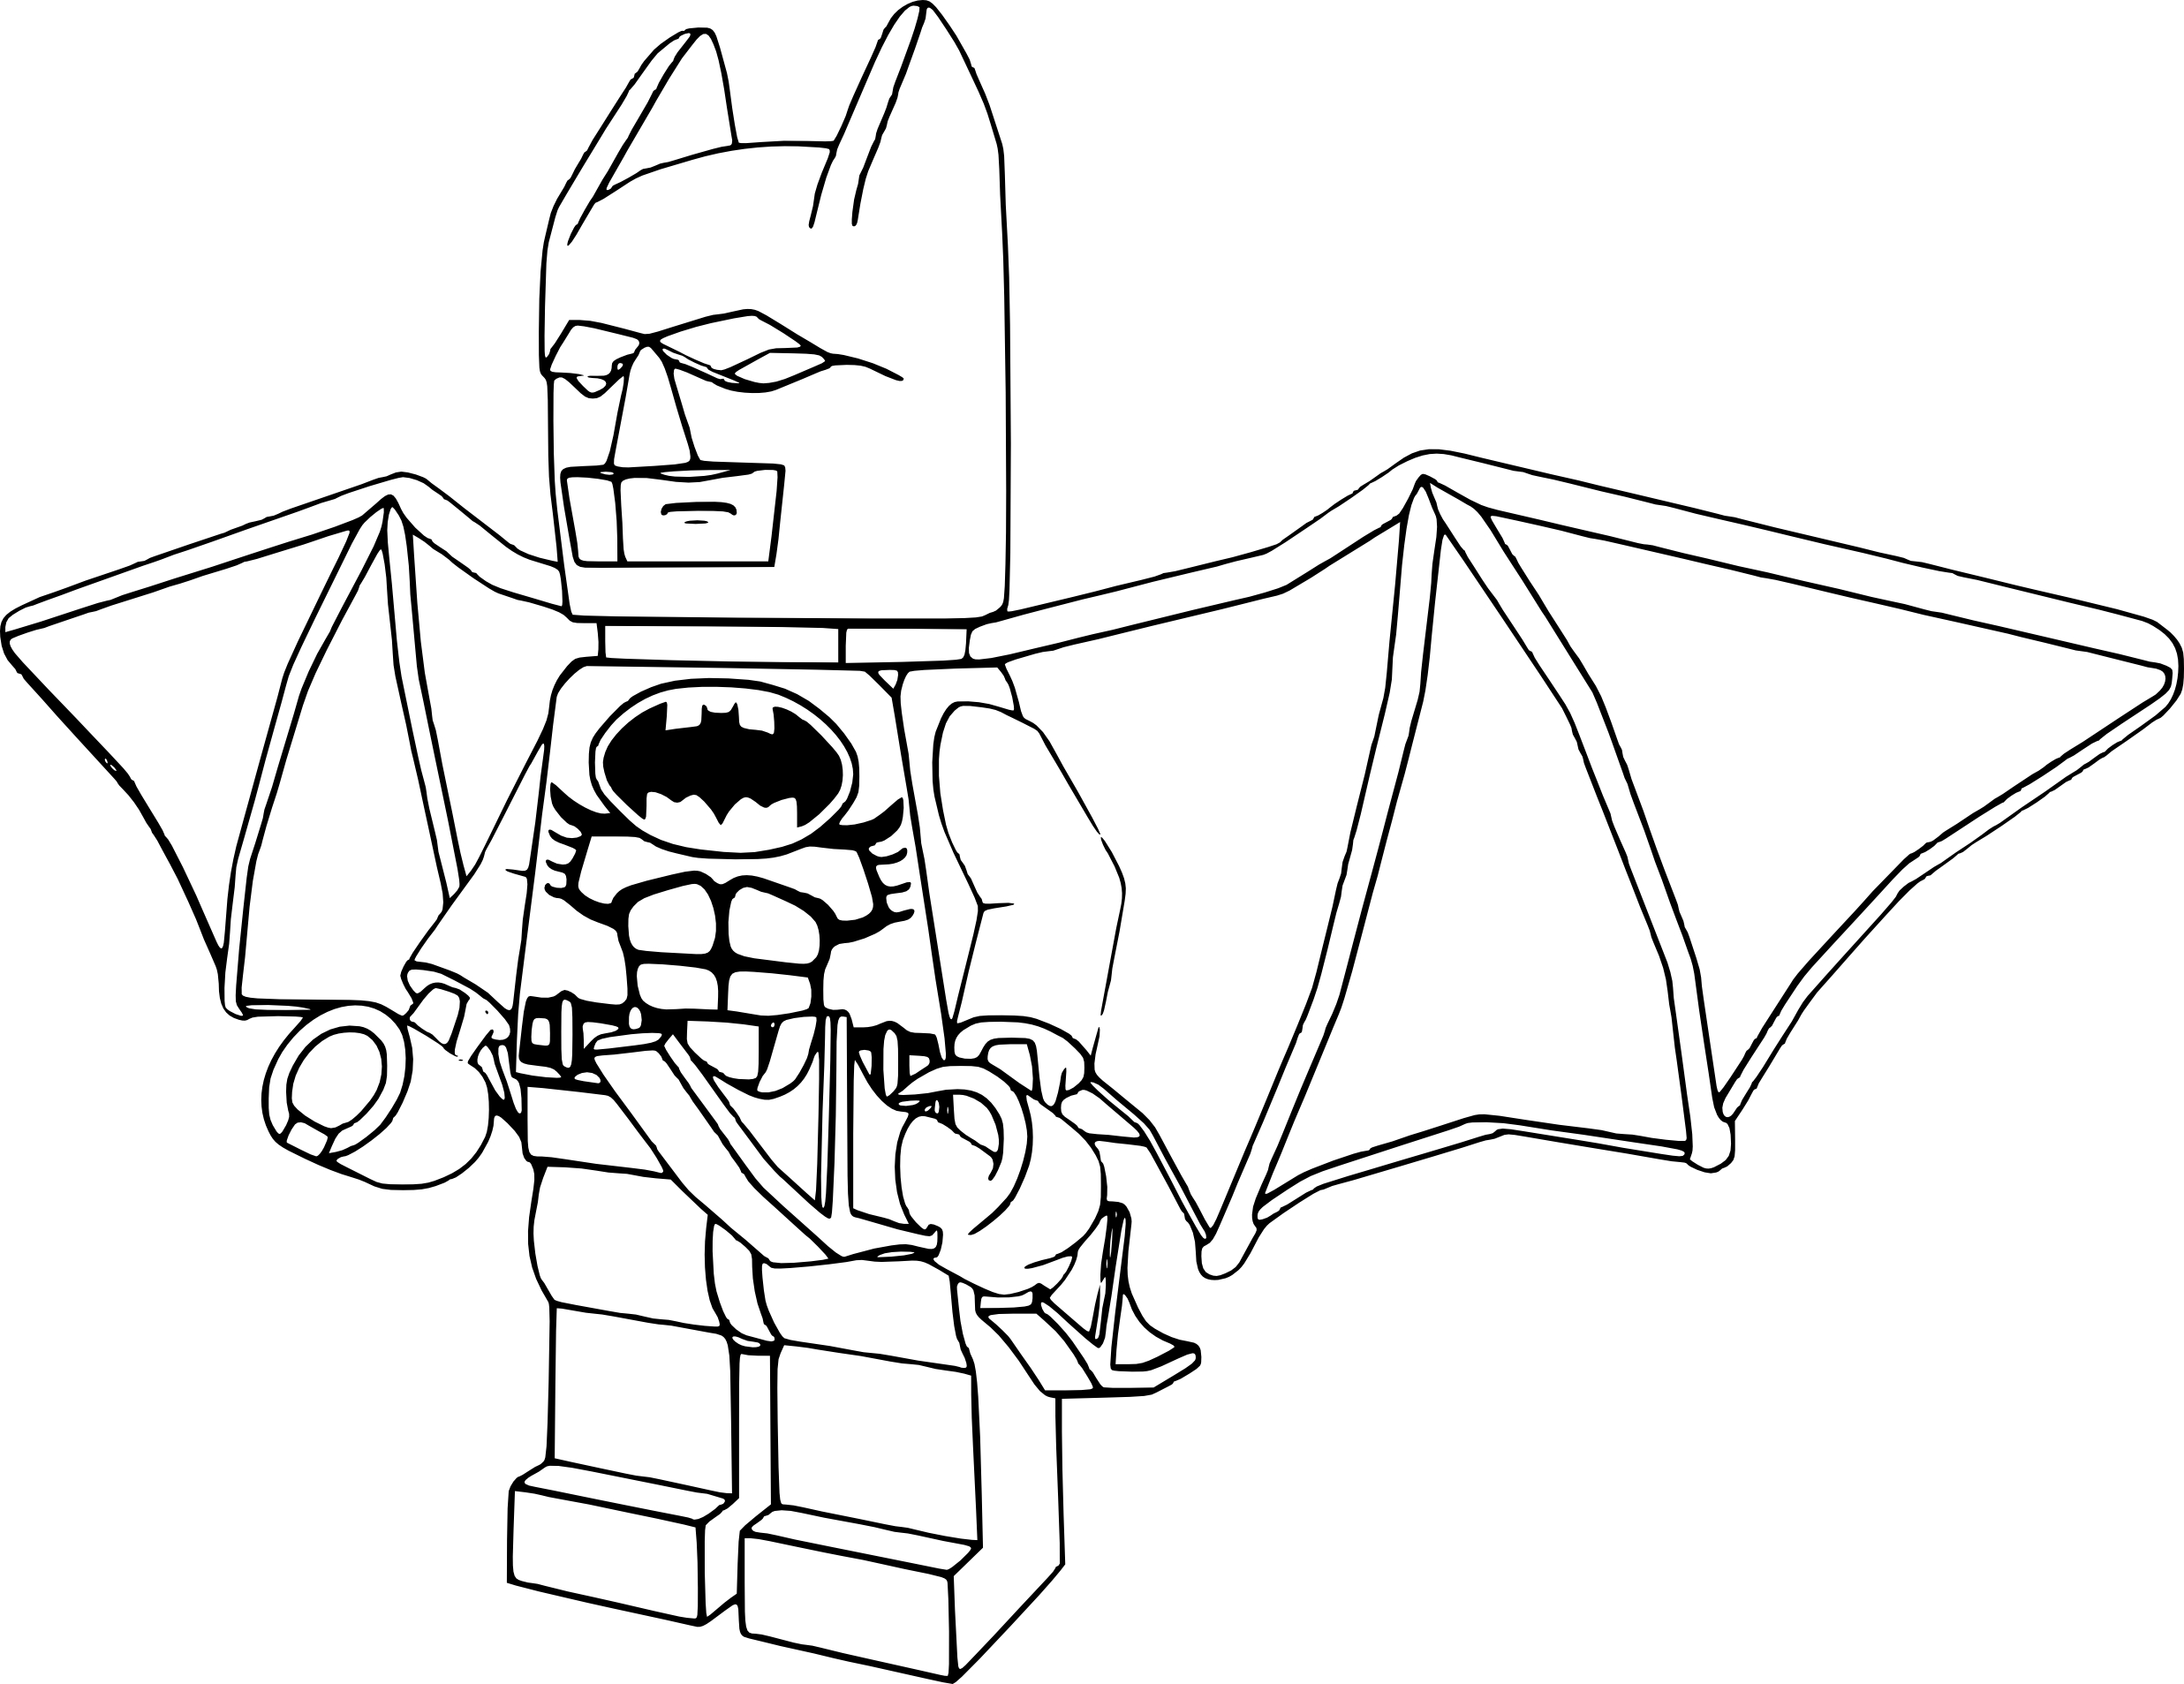 Luxe Dessin Colorier De Batman